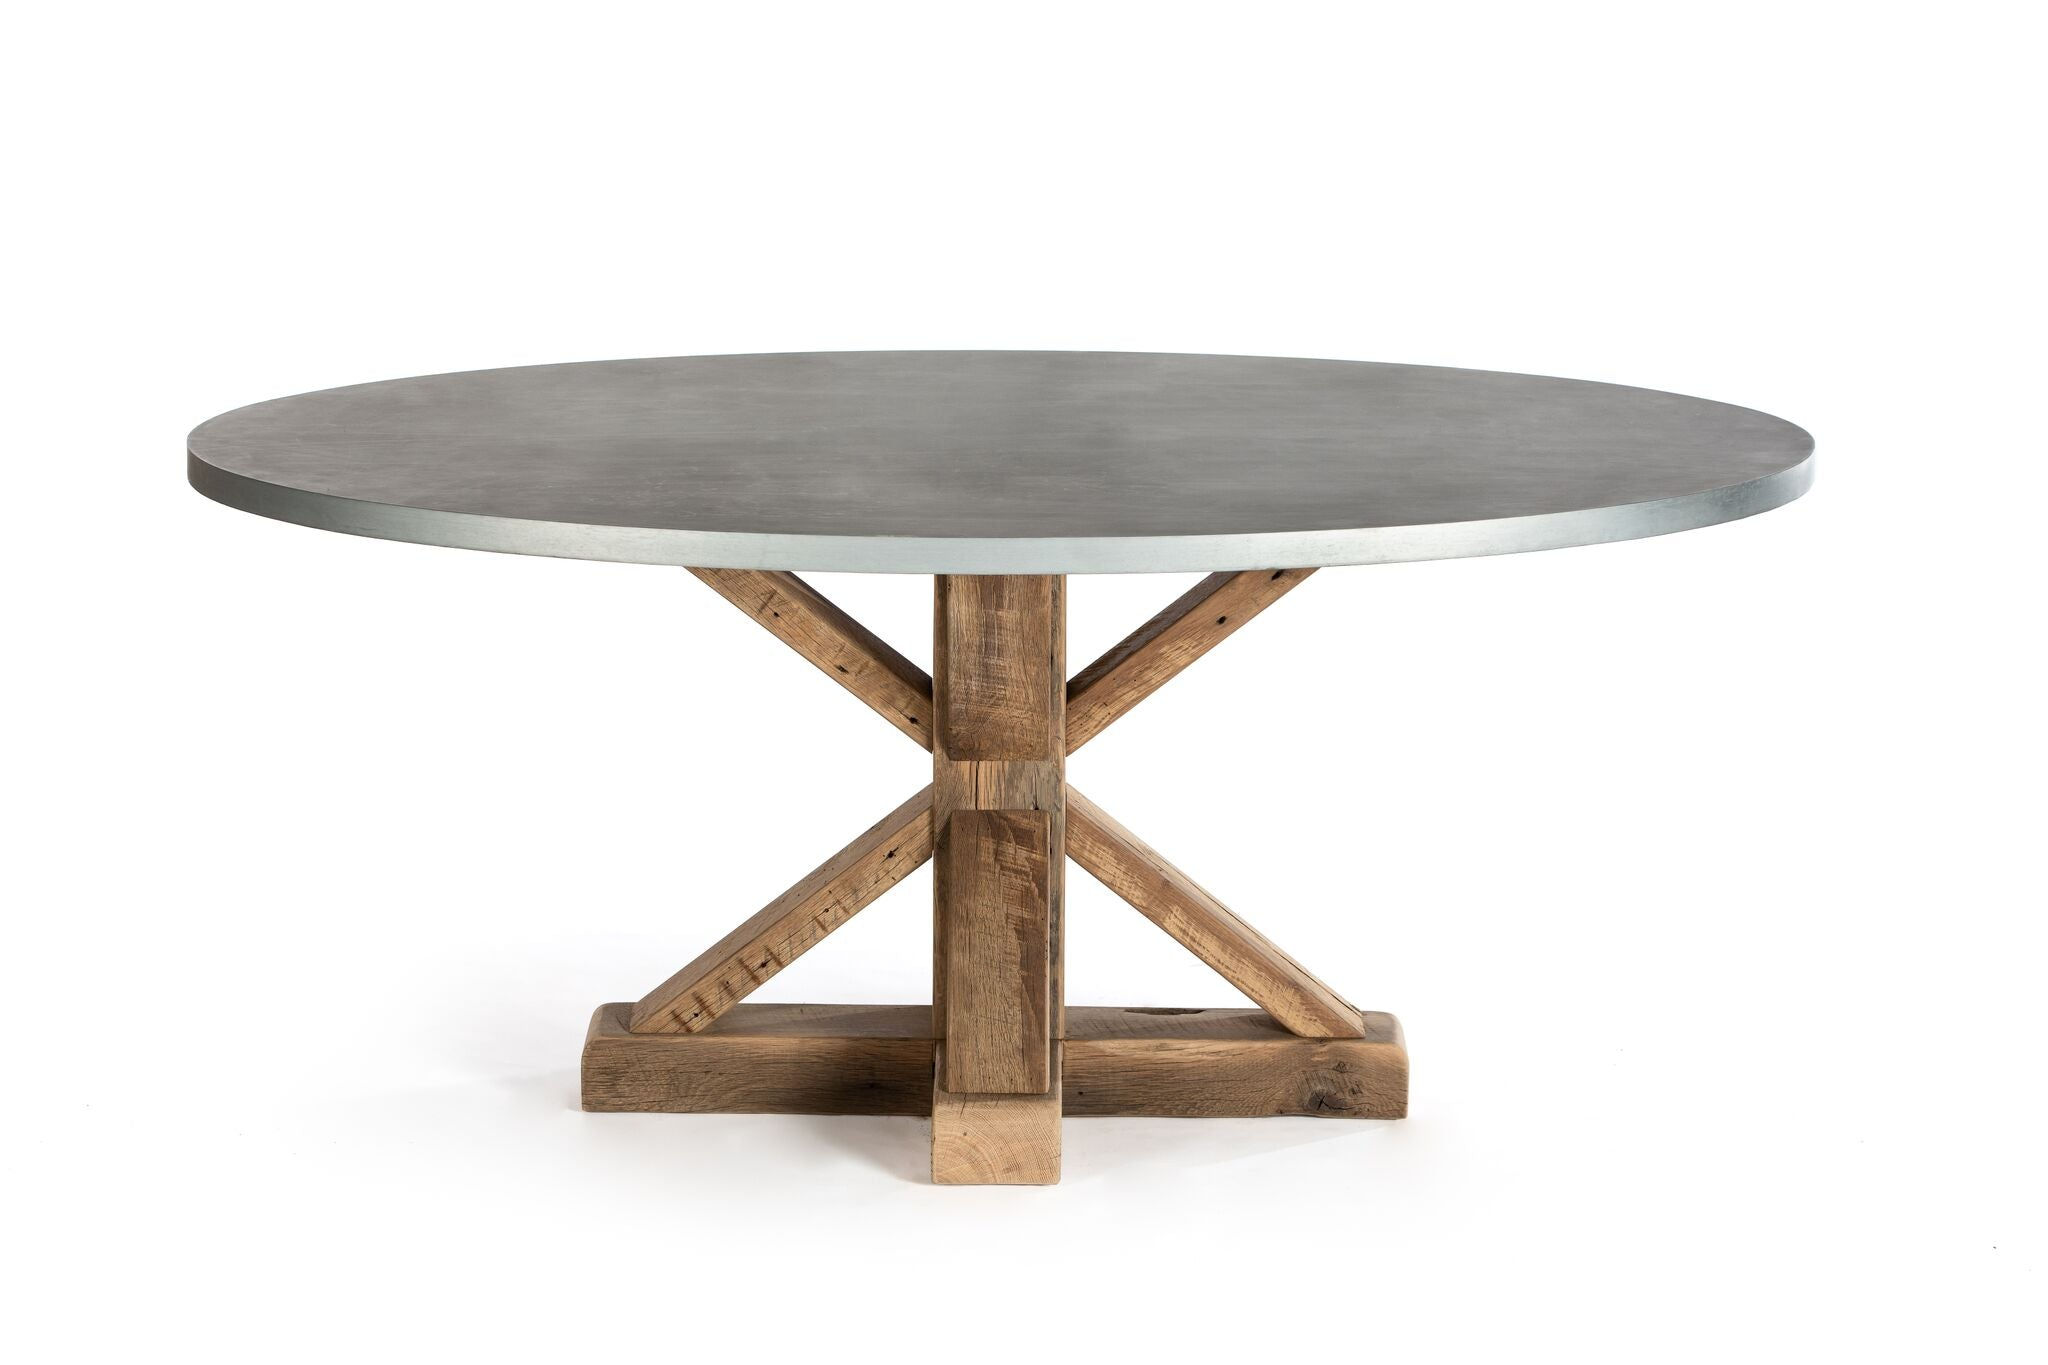 "Zinc Oval Tables | Pedestal French Trestle | CLASSIC | Natural Black Walnut | CUSTOM SIZE 60""L 39""W 30""H 